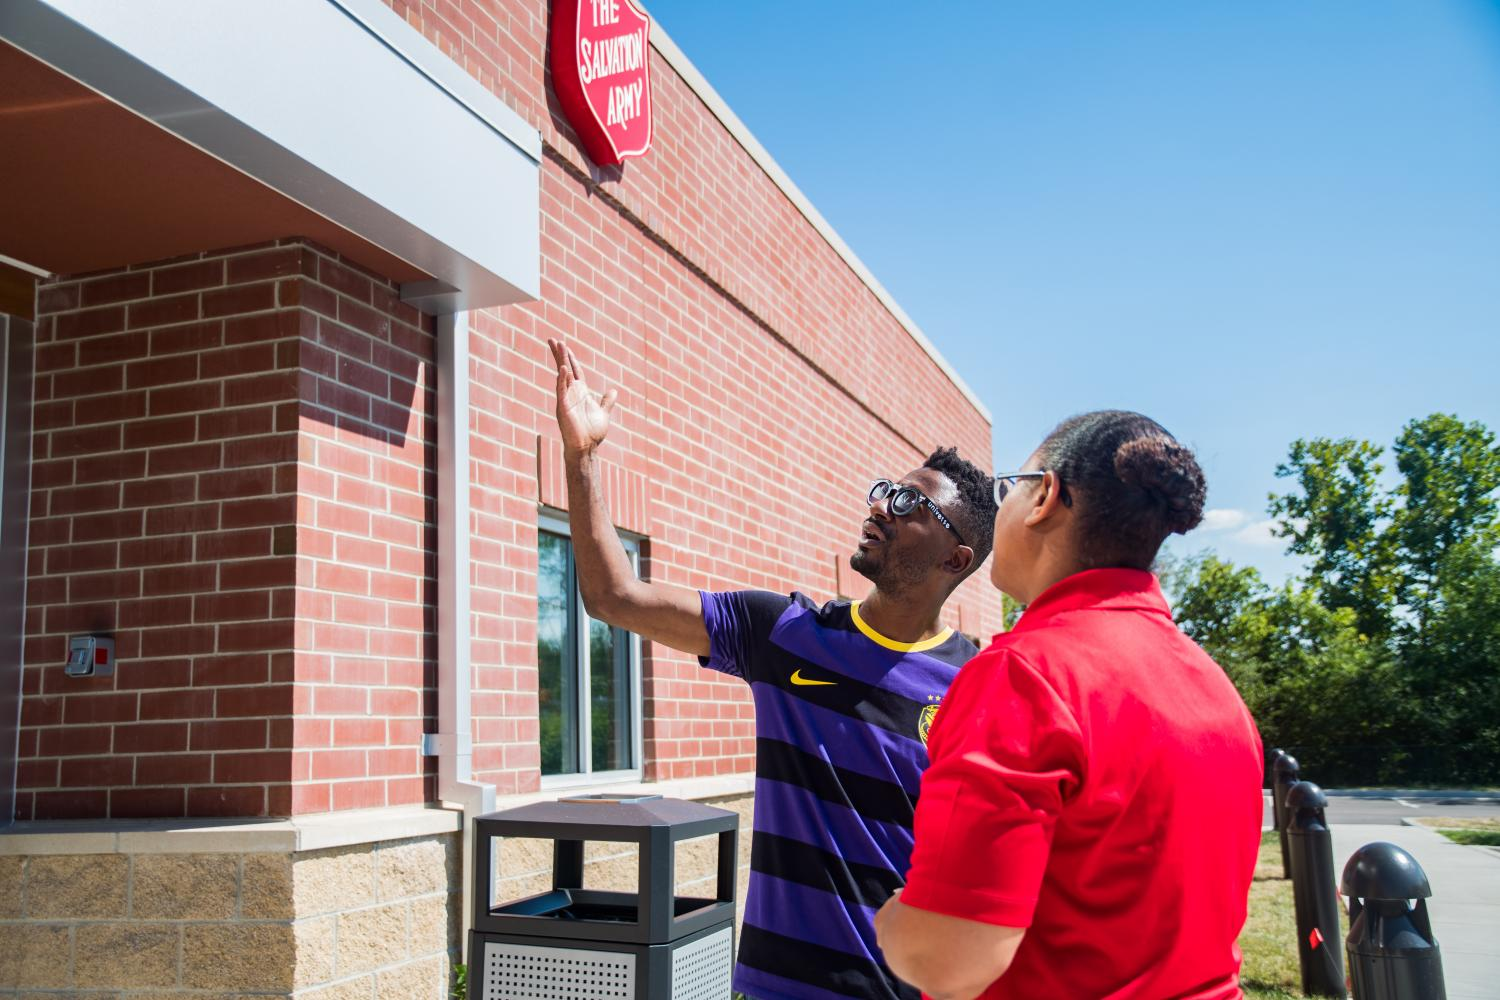 A community member and employee view the new QuikTrip building.  Photo by Michael Melinger.